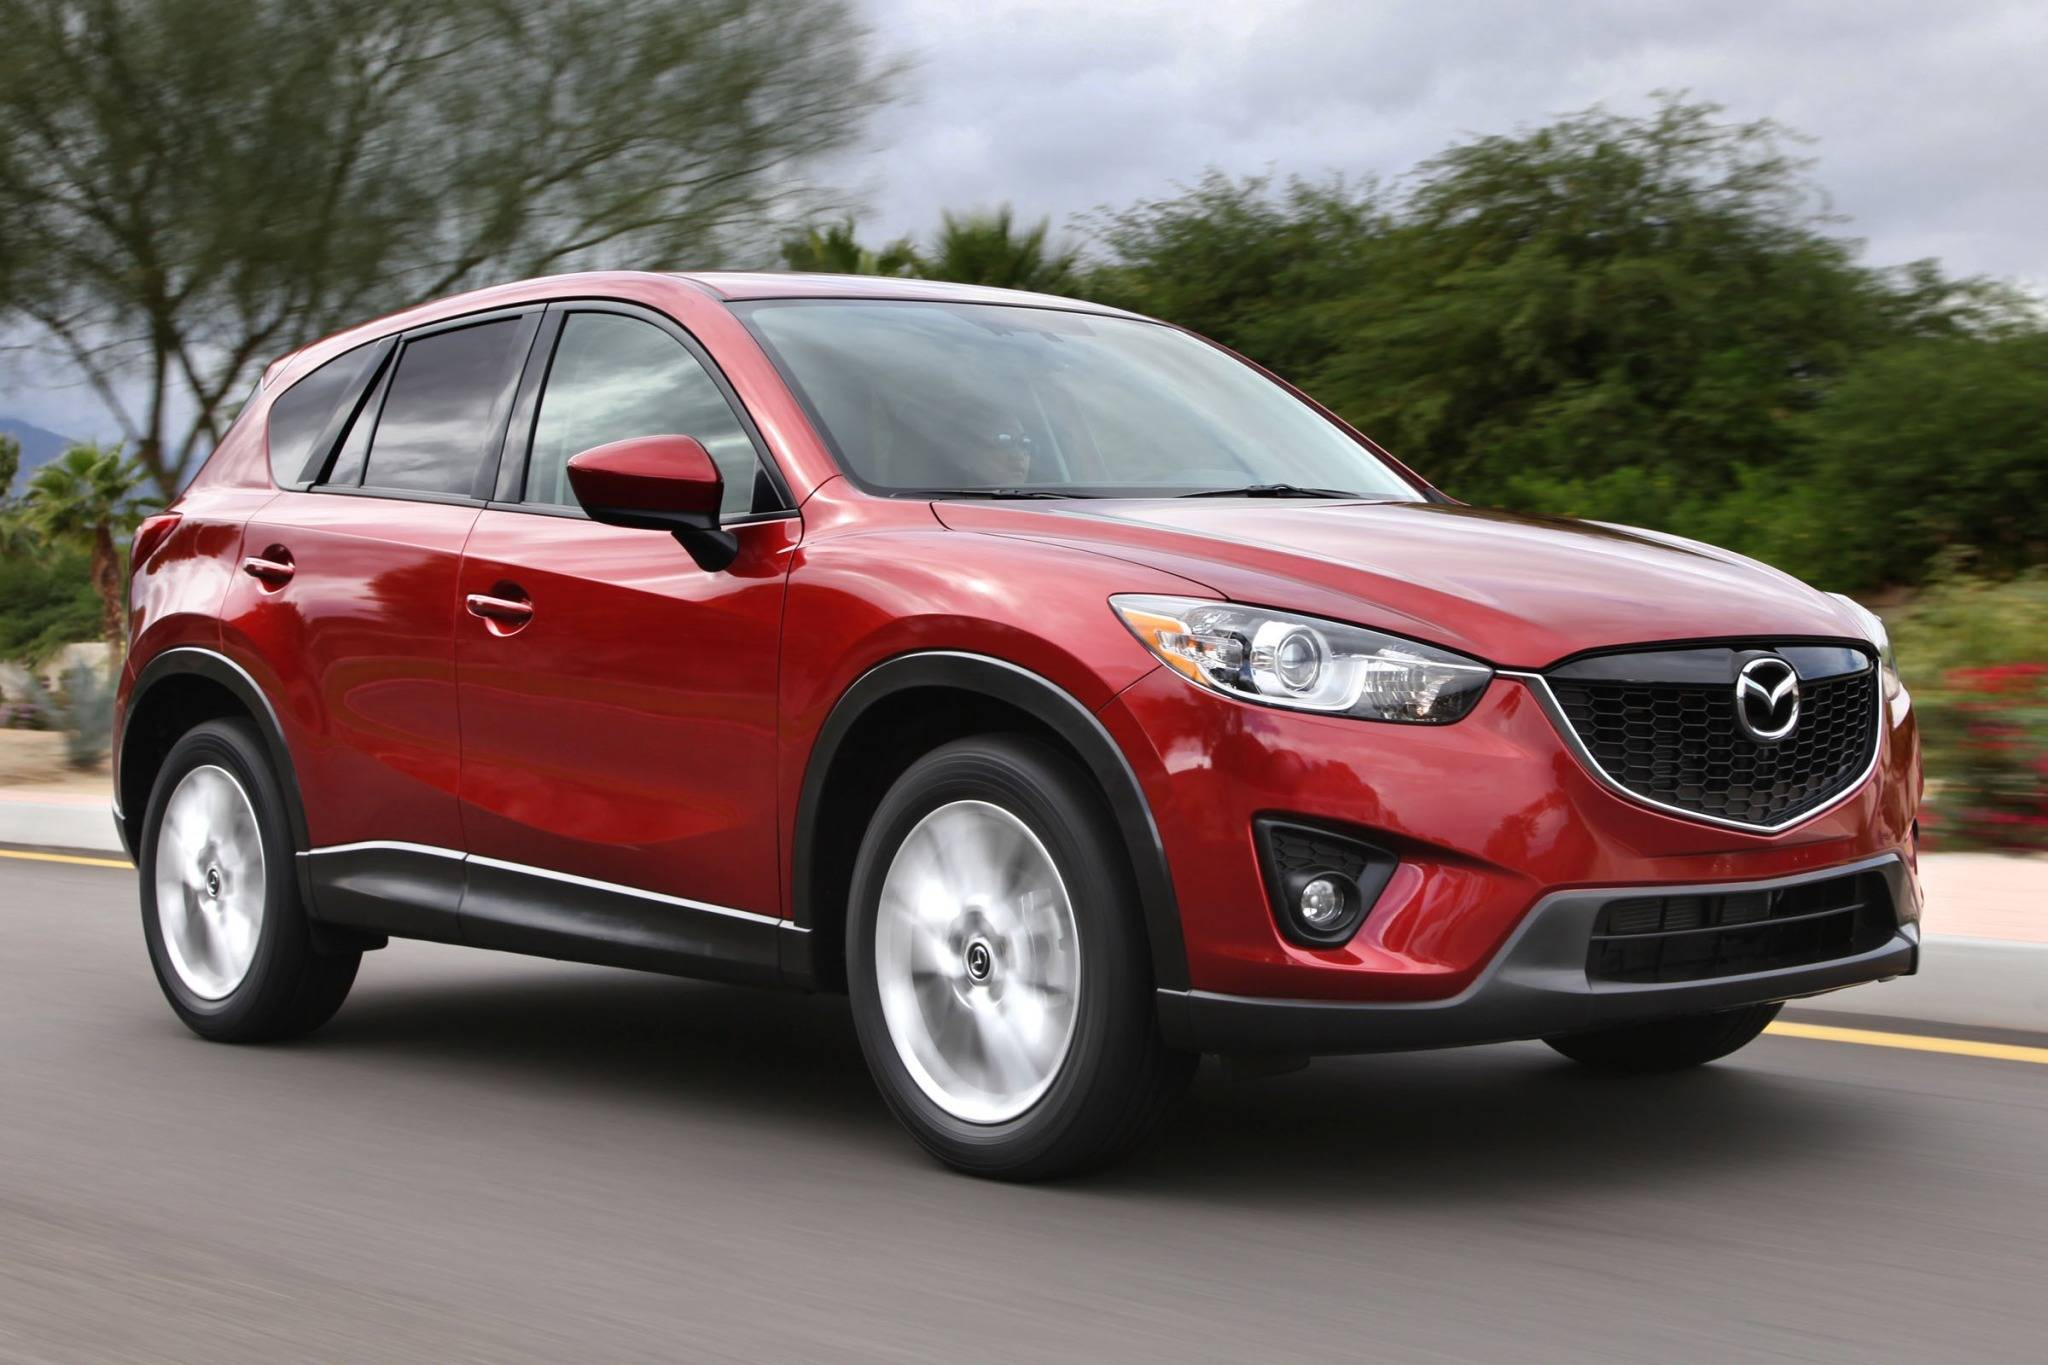 mazda cx suv touring grand specs value sport features edmunds autodetective 4dr pricing cars